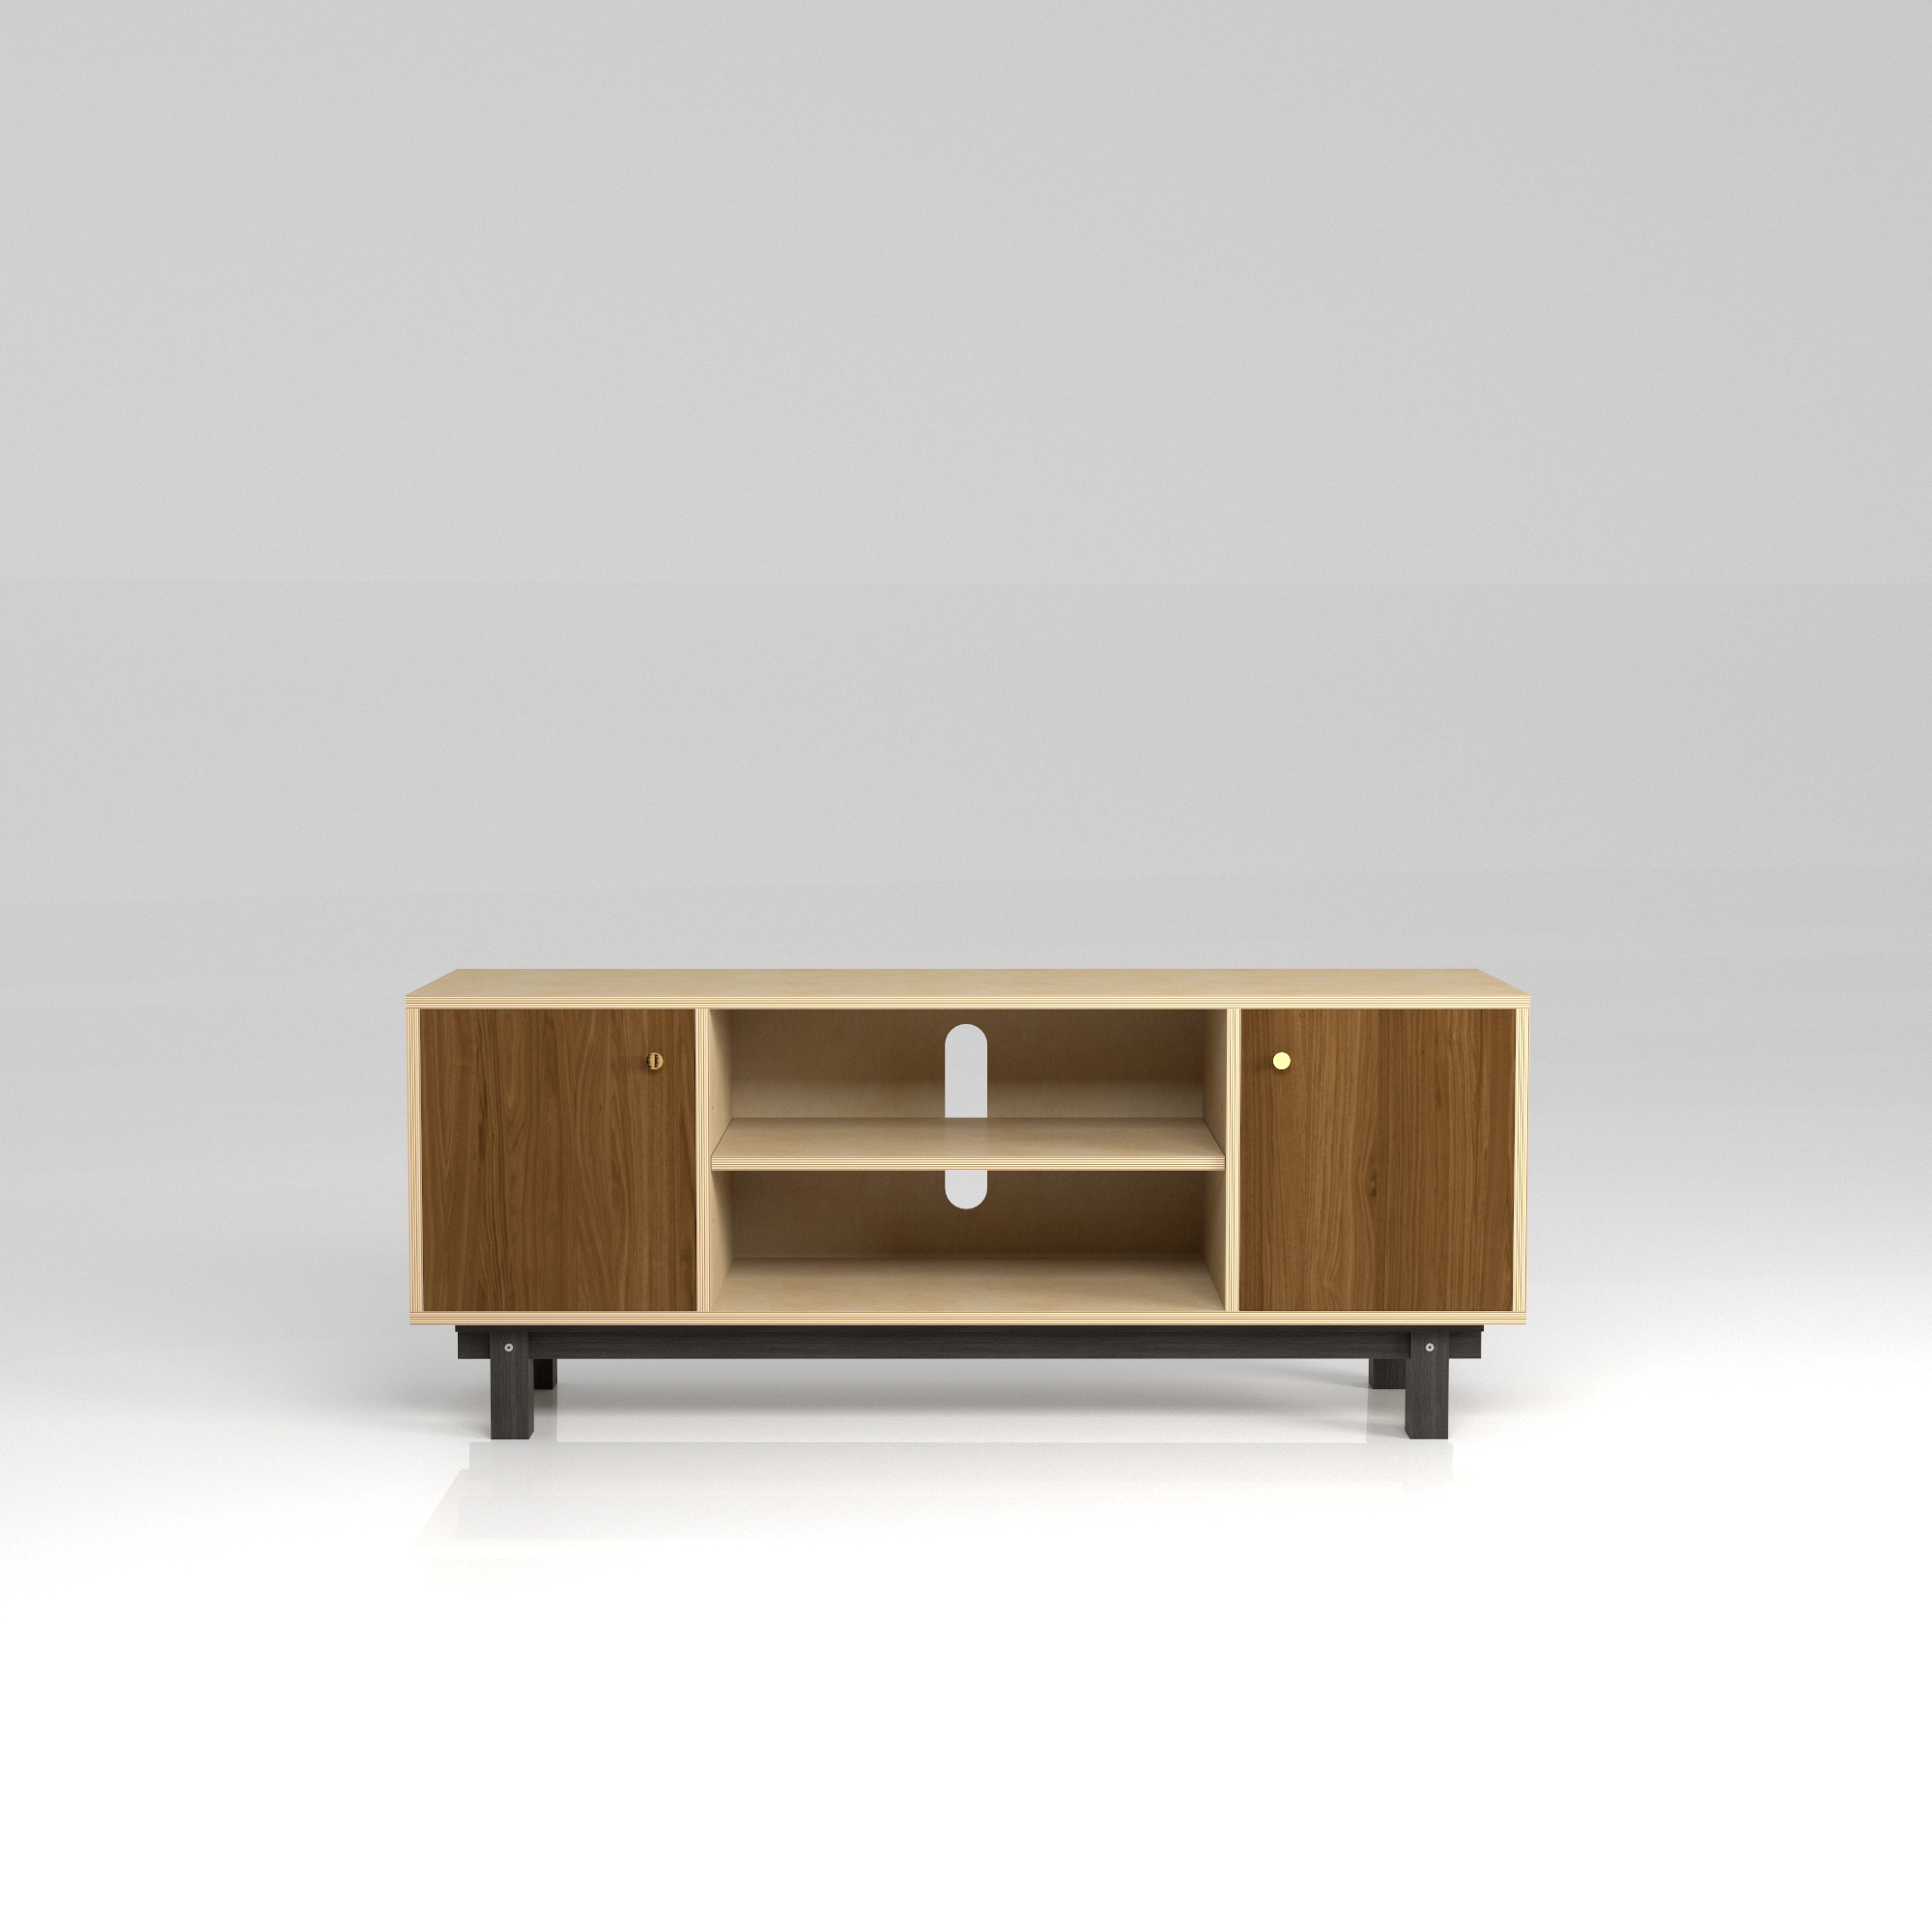 Large Media 2 (LM2) in Walnut   Large media unit with two cupboards, adjustable shelf and cutouts for hi-fi components. Ideal for any TV or Hifi combination.